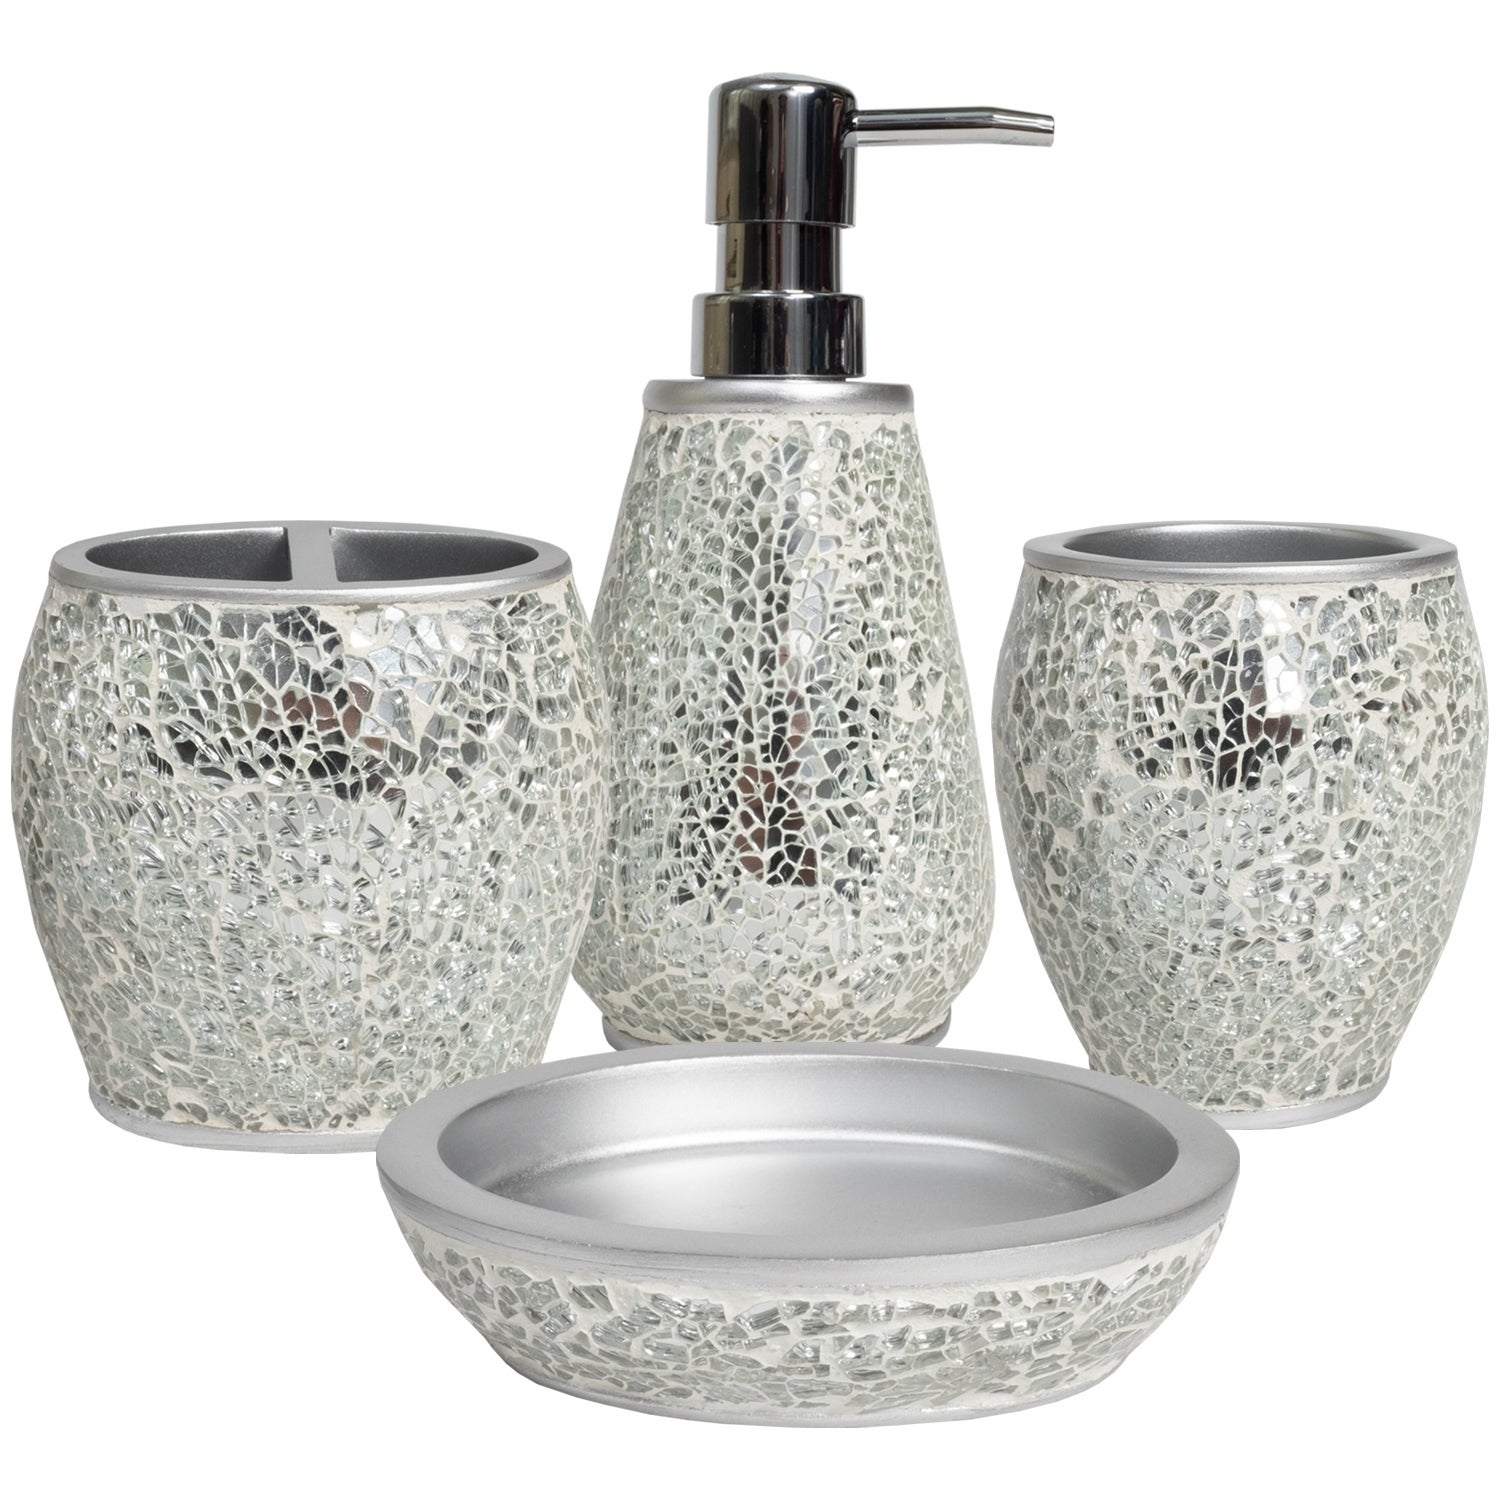 Glamour Handcrafted Bathroom Accessories